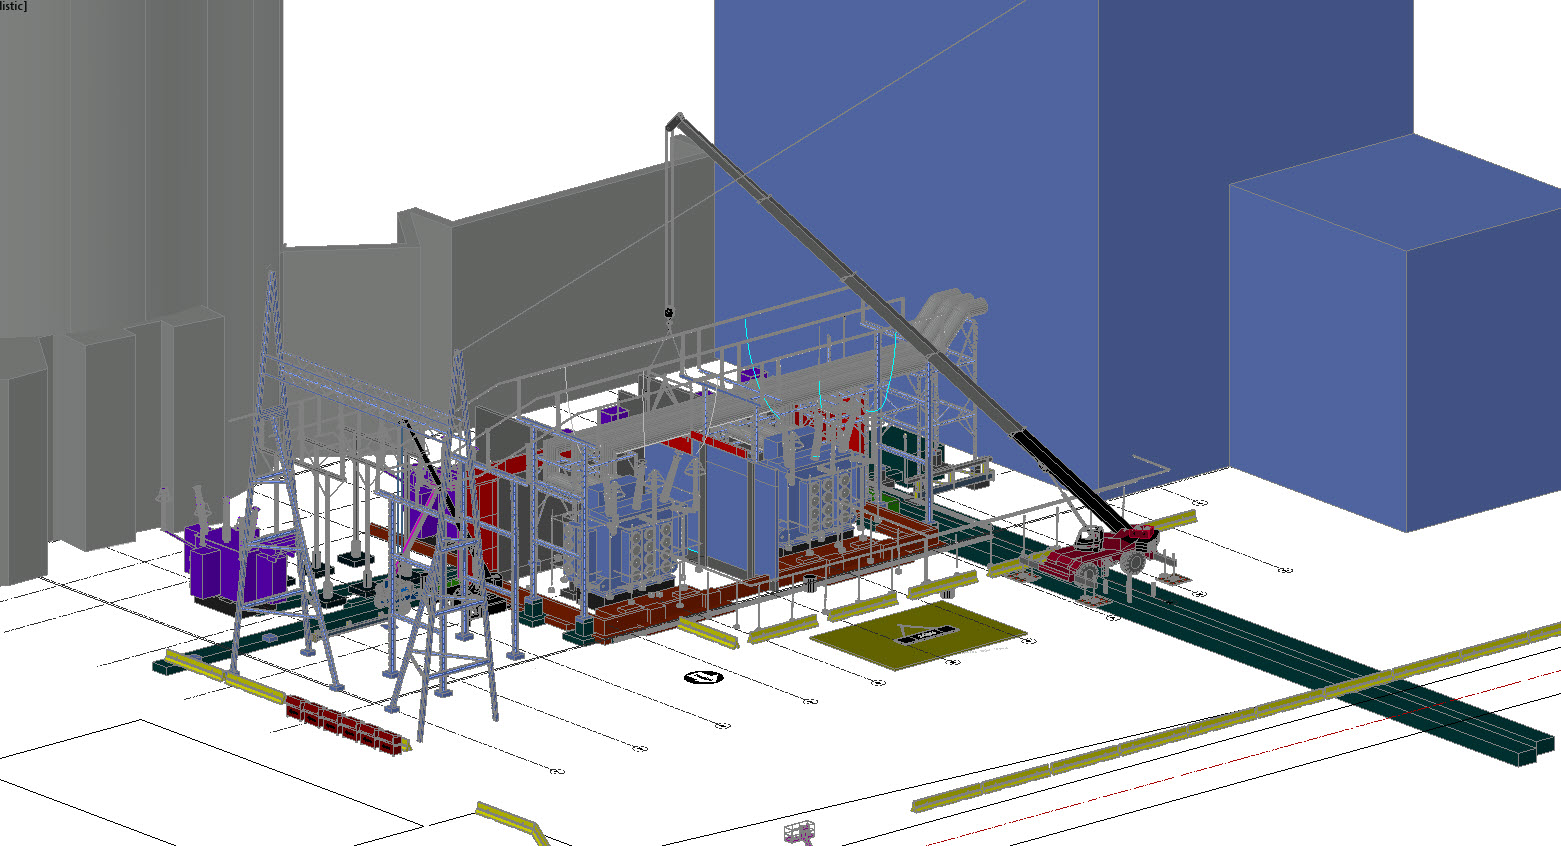 Projects Critical Systems Nuclear Power Plant Diagram Animation See Pictures Of One Our Recent Extension The Existing Fire Separation Barriers To Accommodate New Main Transformers At